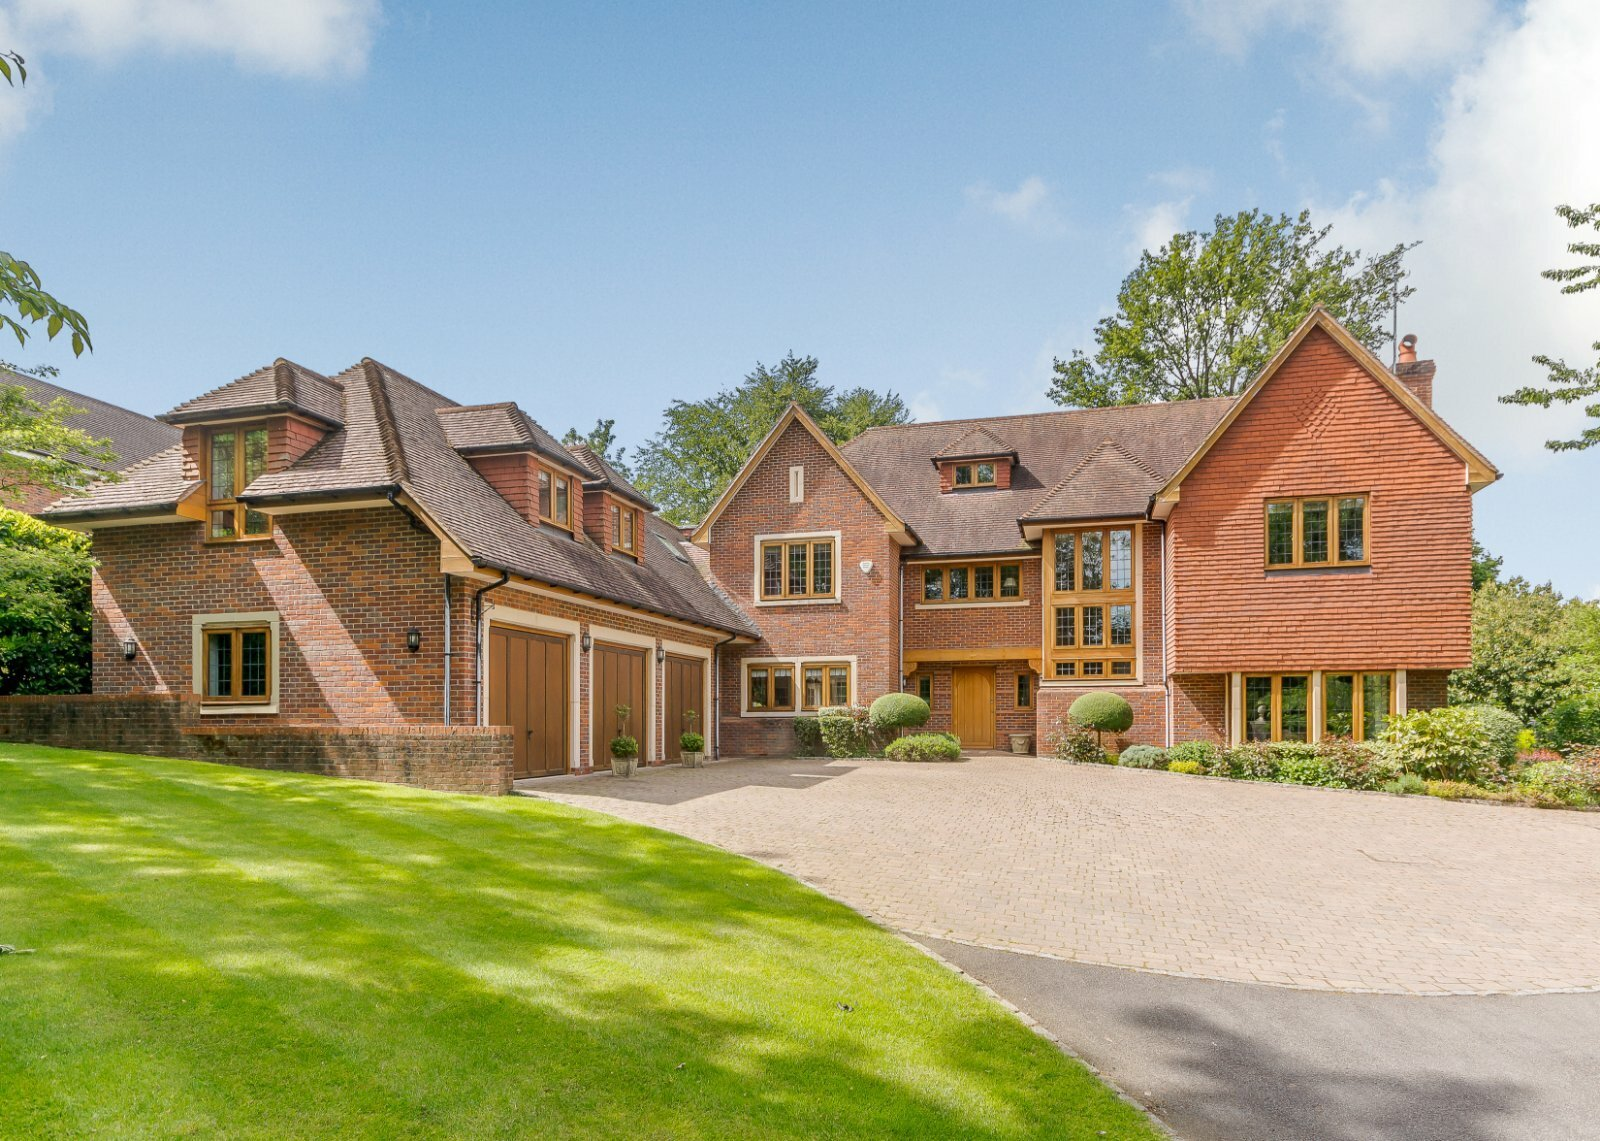 House in Chalfont Saint Giles, England, United Kingdom 1